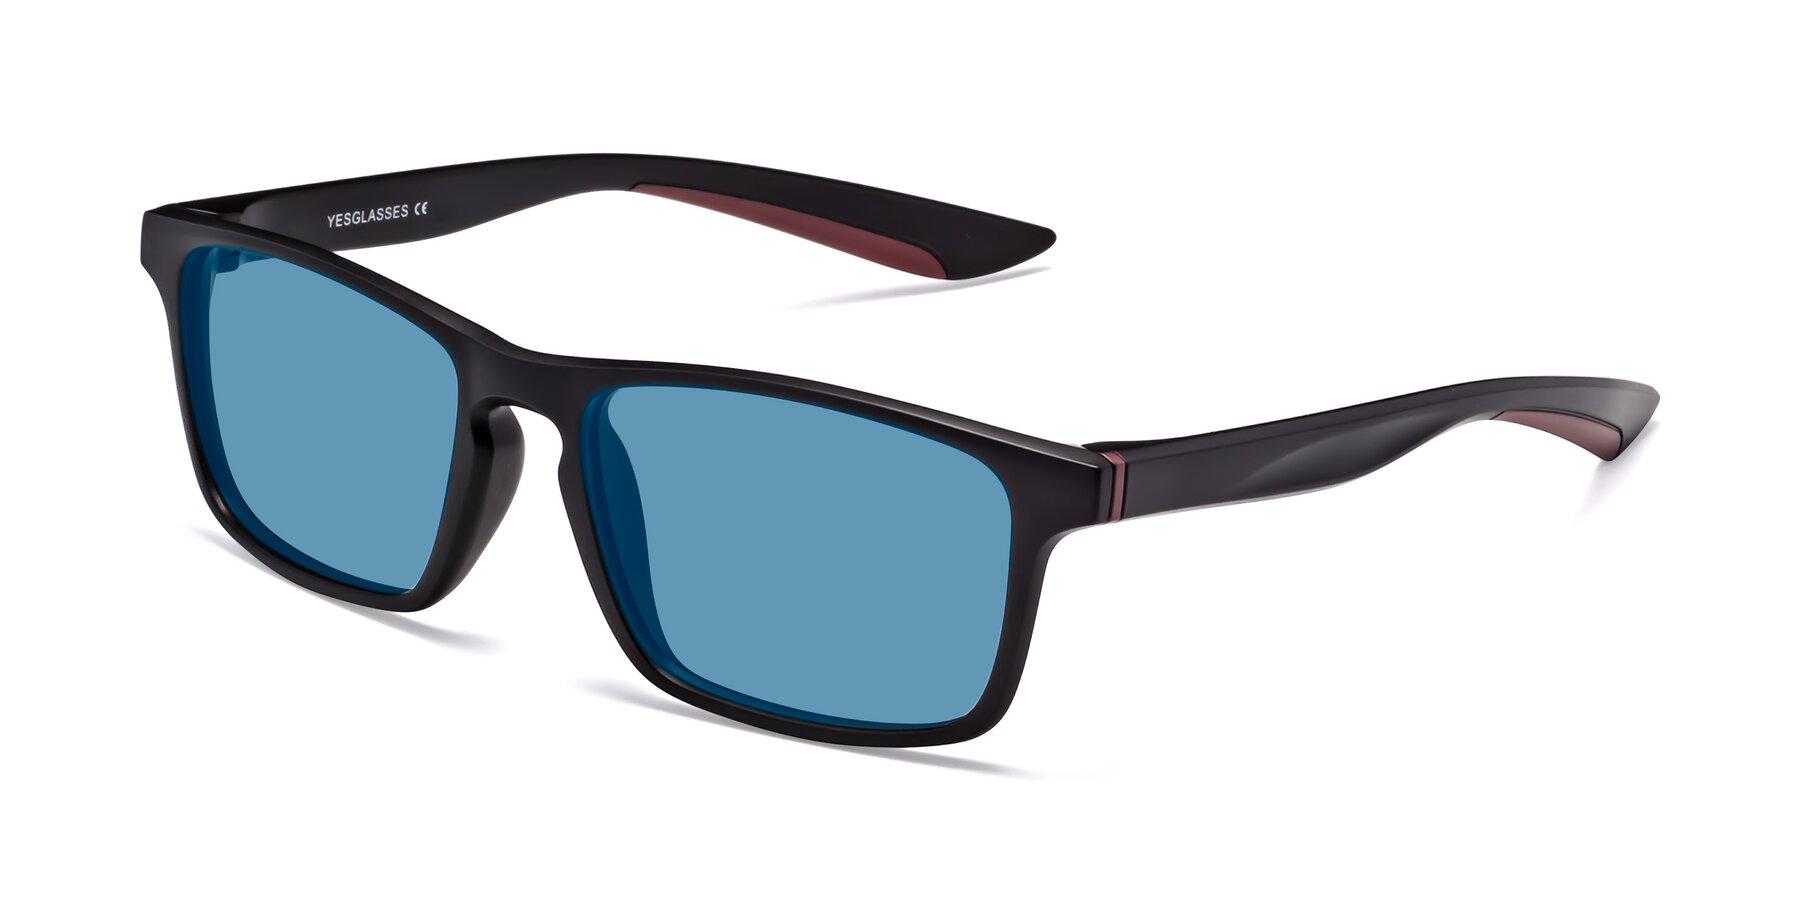 Angle of Passion in Matte Black-Wine with Medium Blue Tinted Lenses